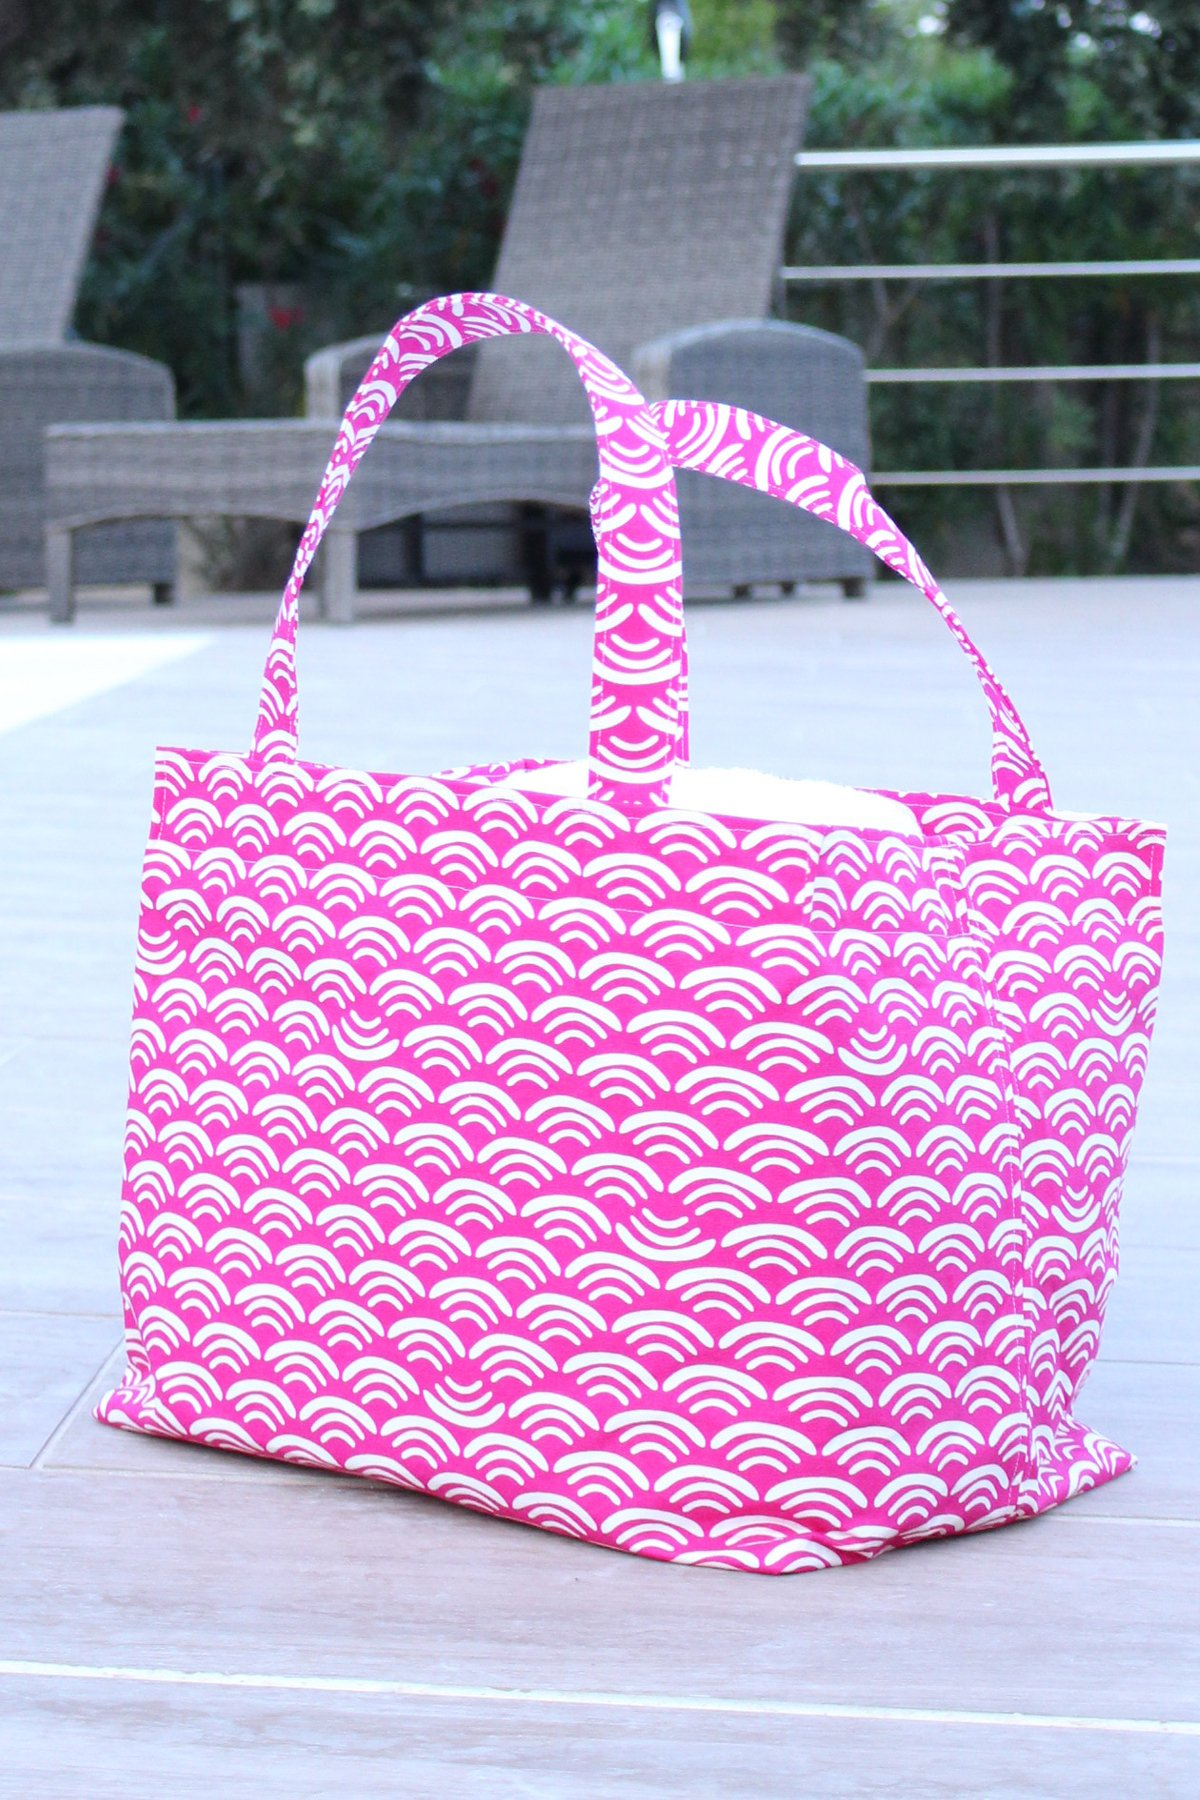 To-Go Tote made by Victoria Peat